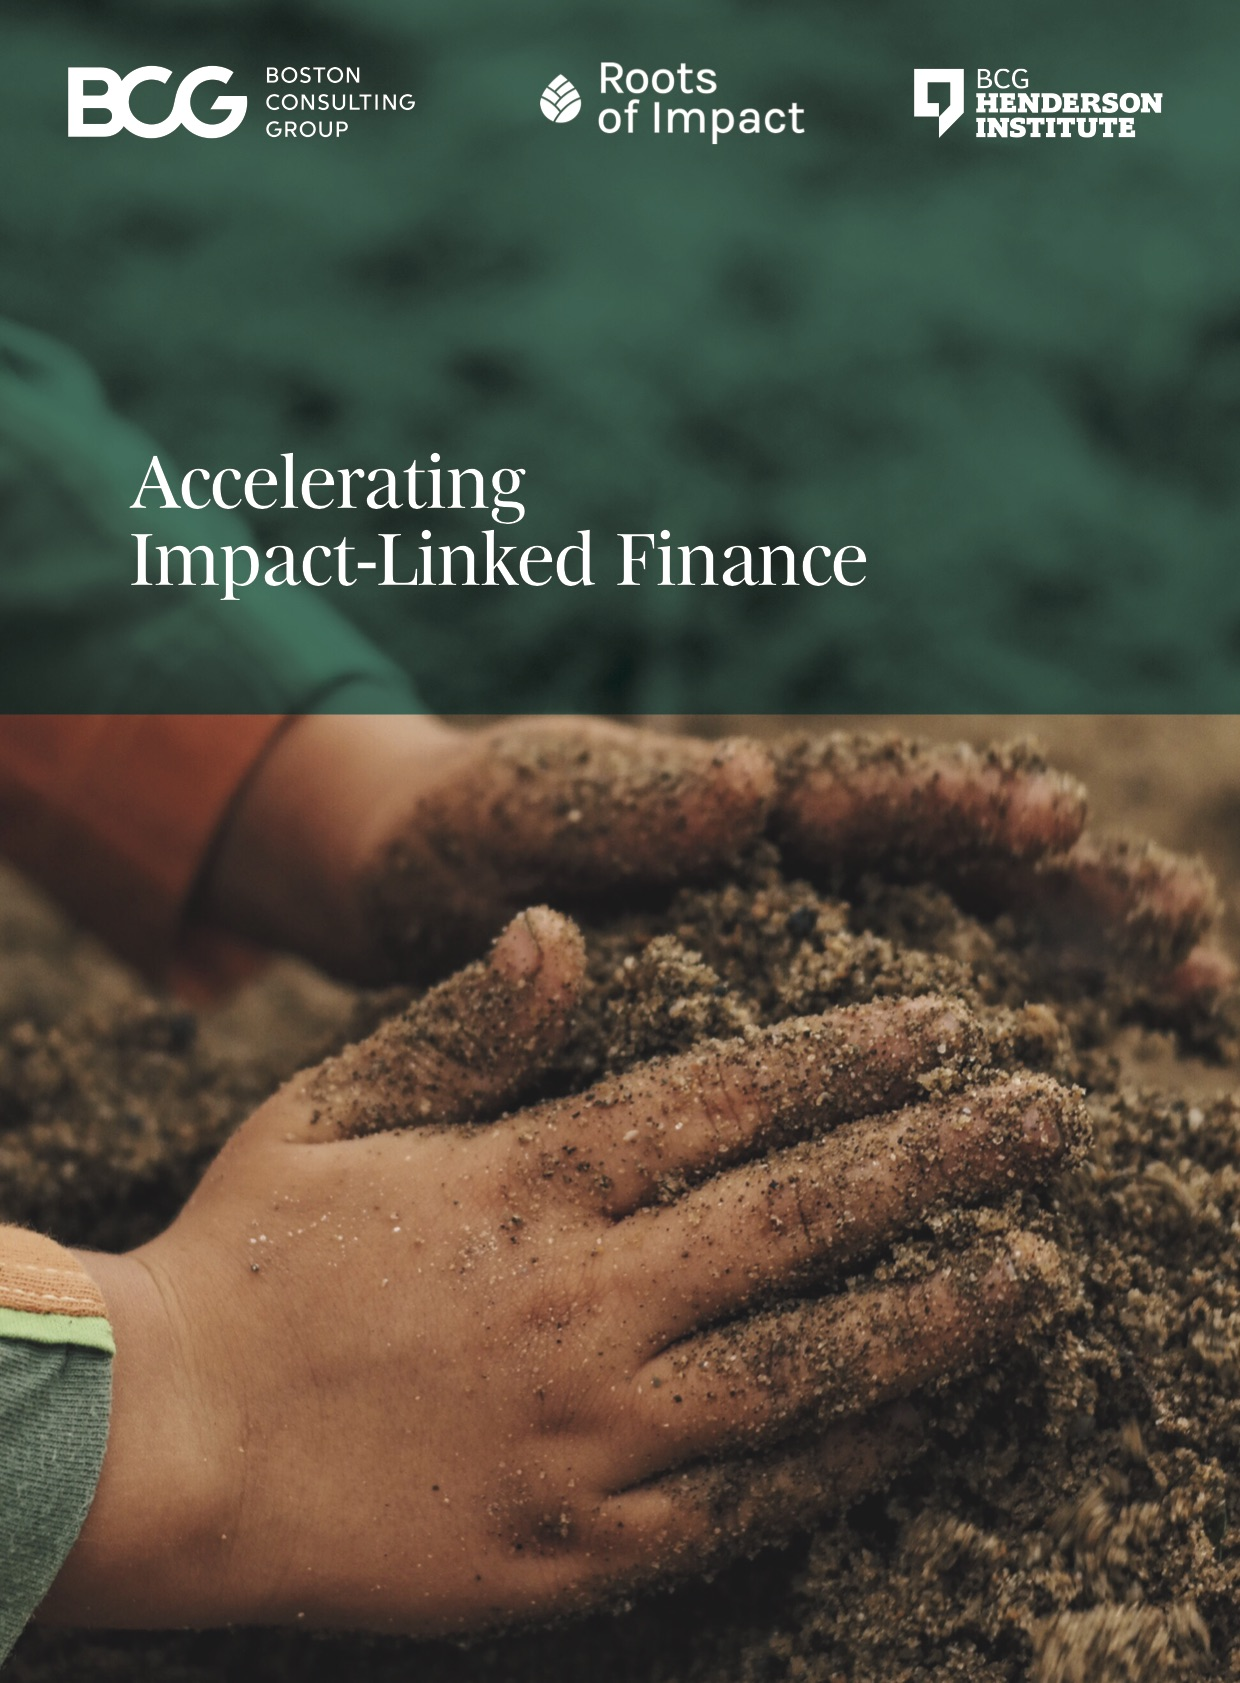 Accelerating Impact-Linked Finance